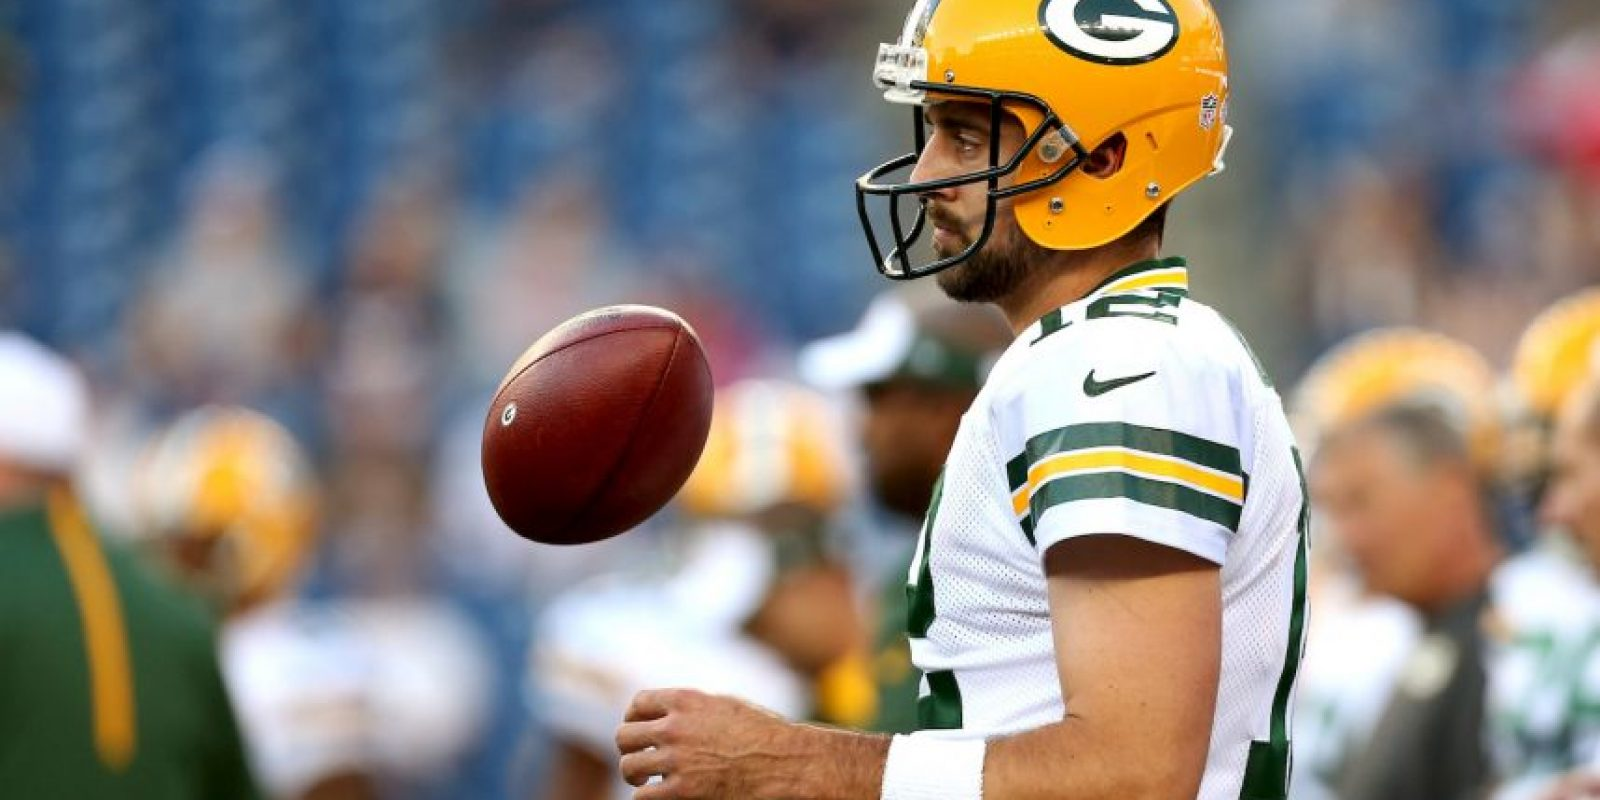 8. Aaron Rodgers Foto: Getty Images